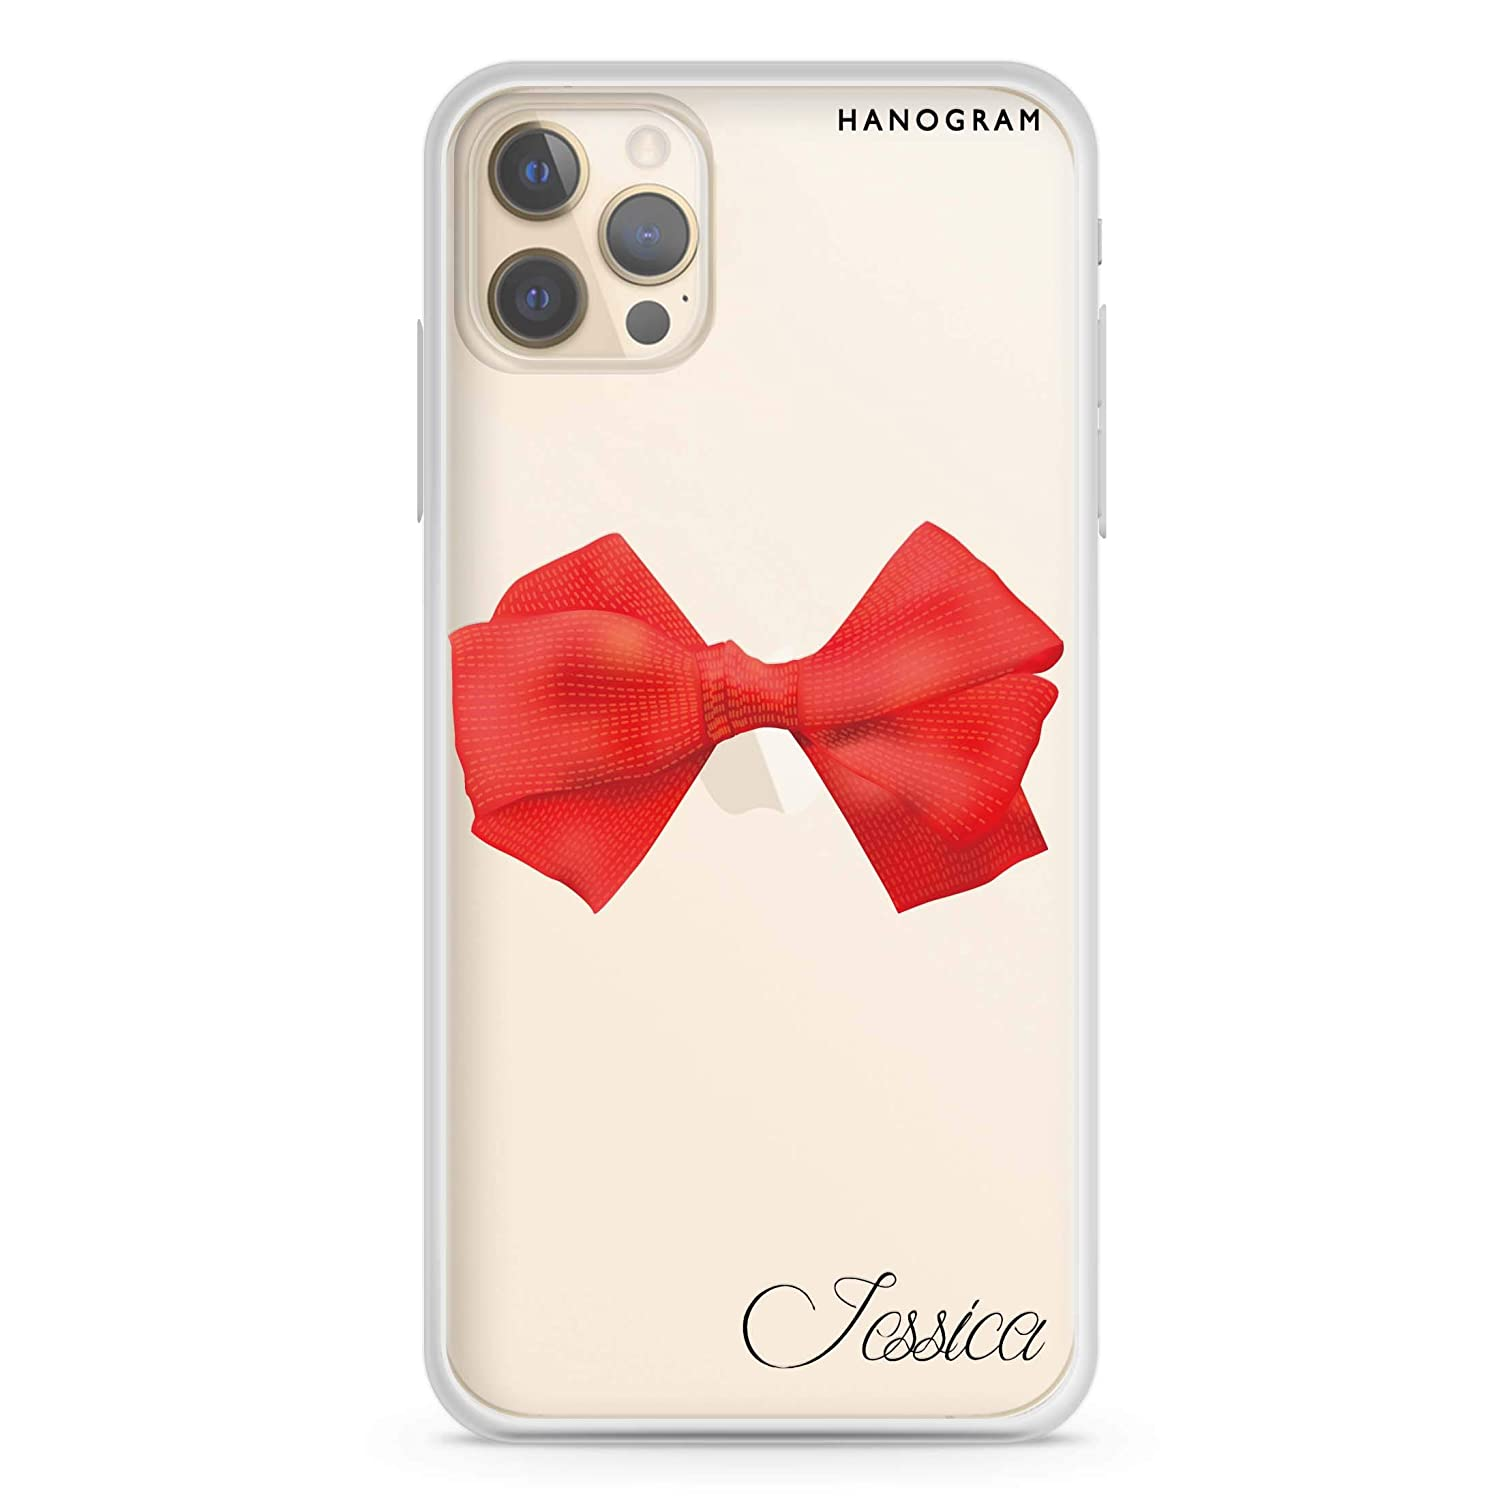 2021 Red NEW before selling Bow iPhone 12 Pro Clear Max Case Soft